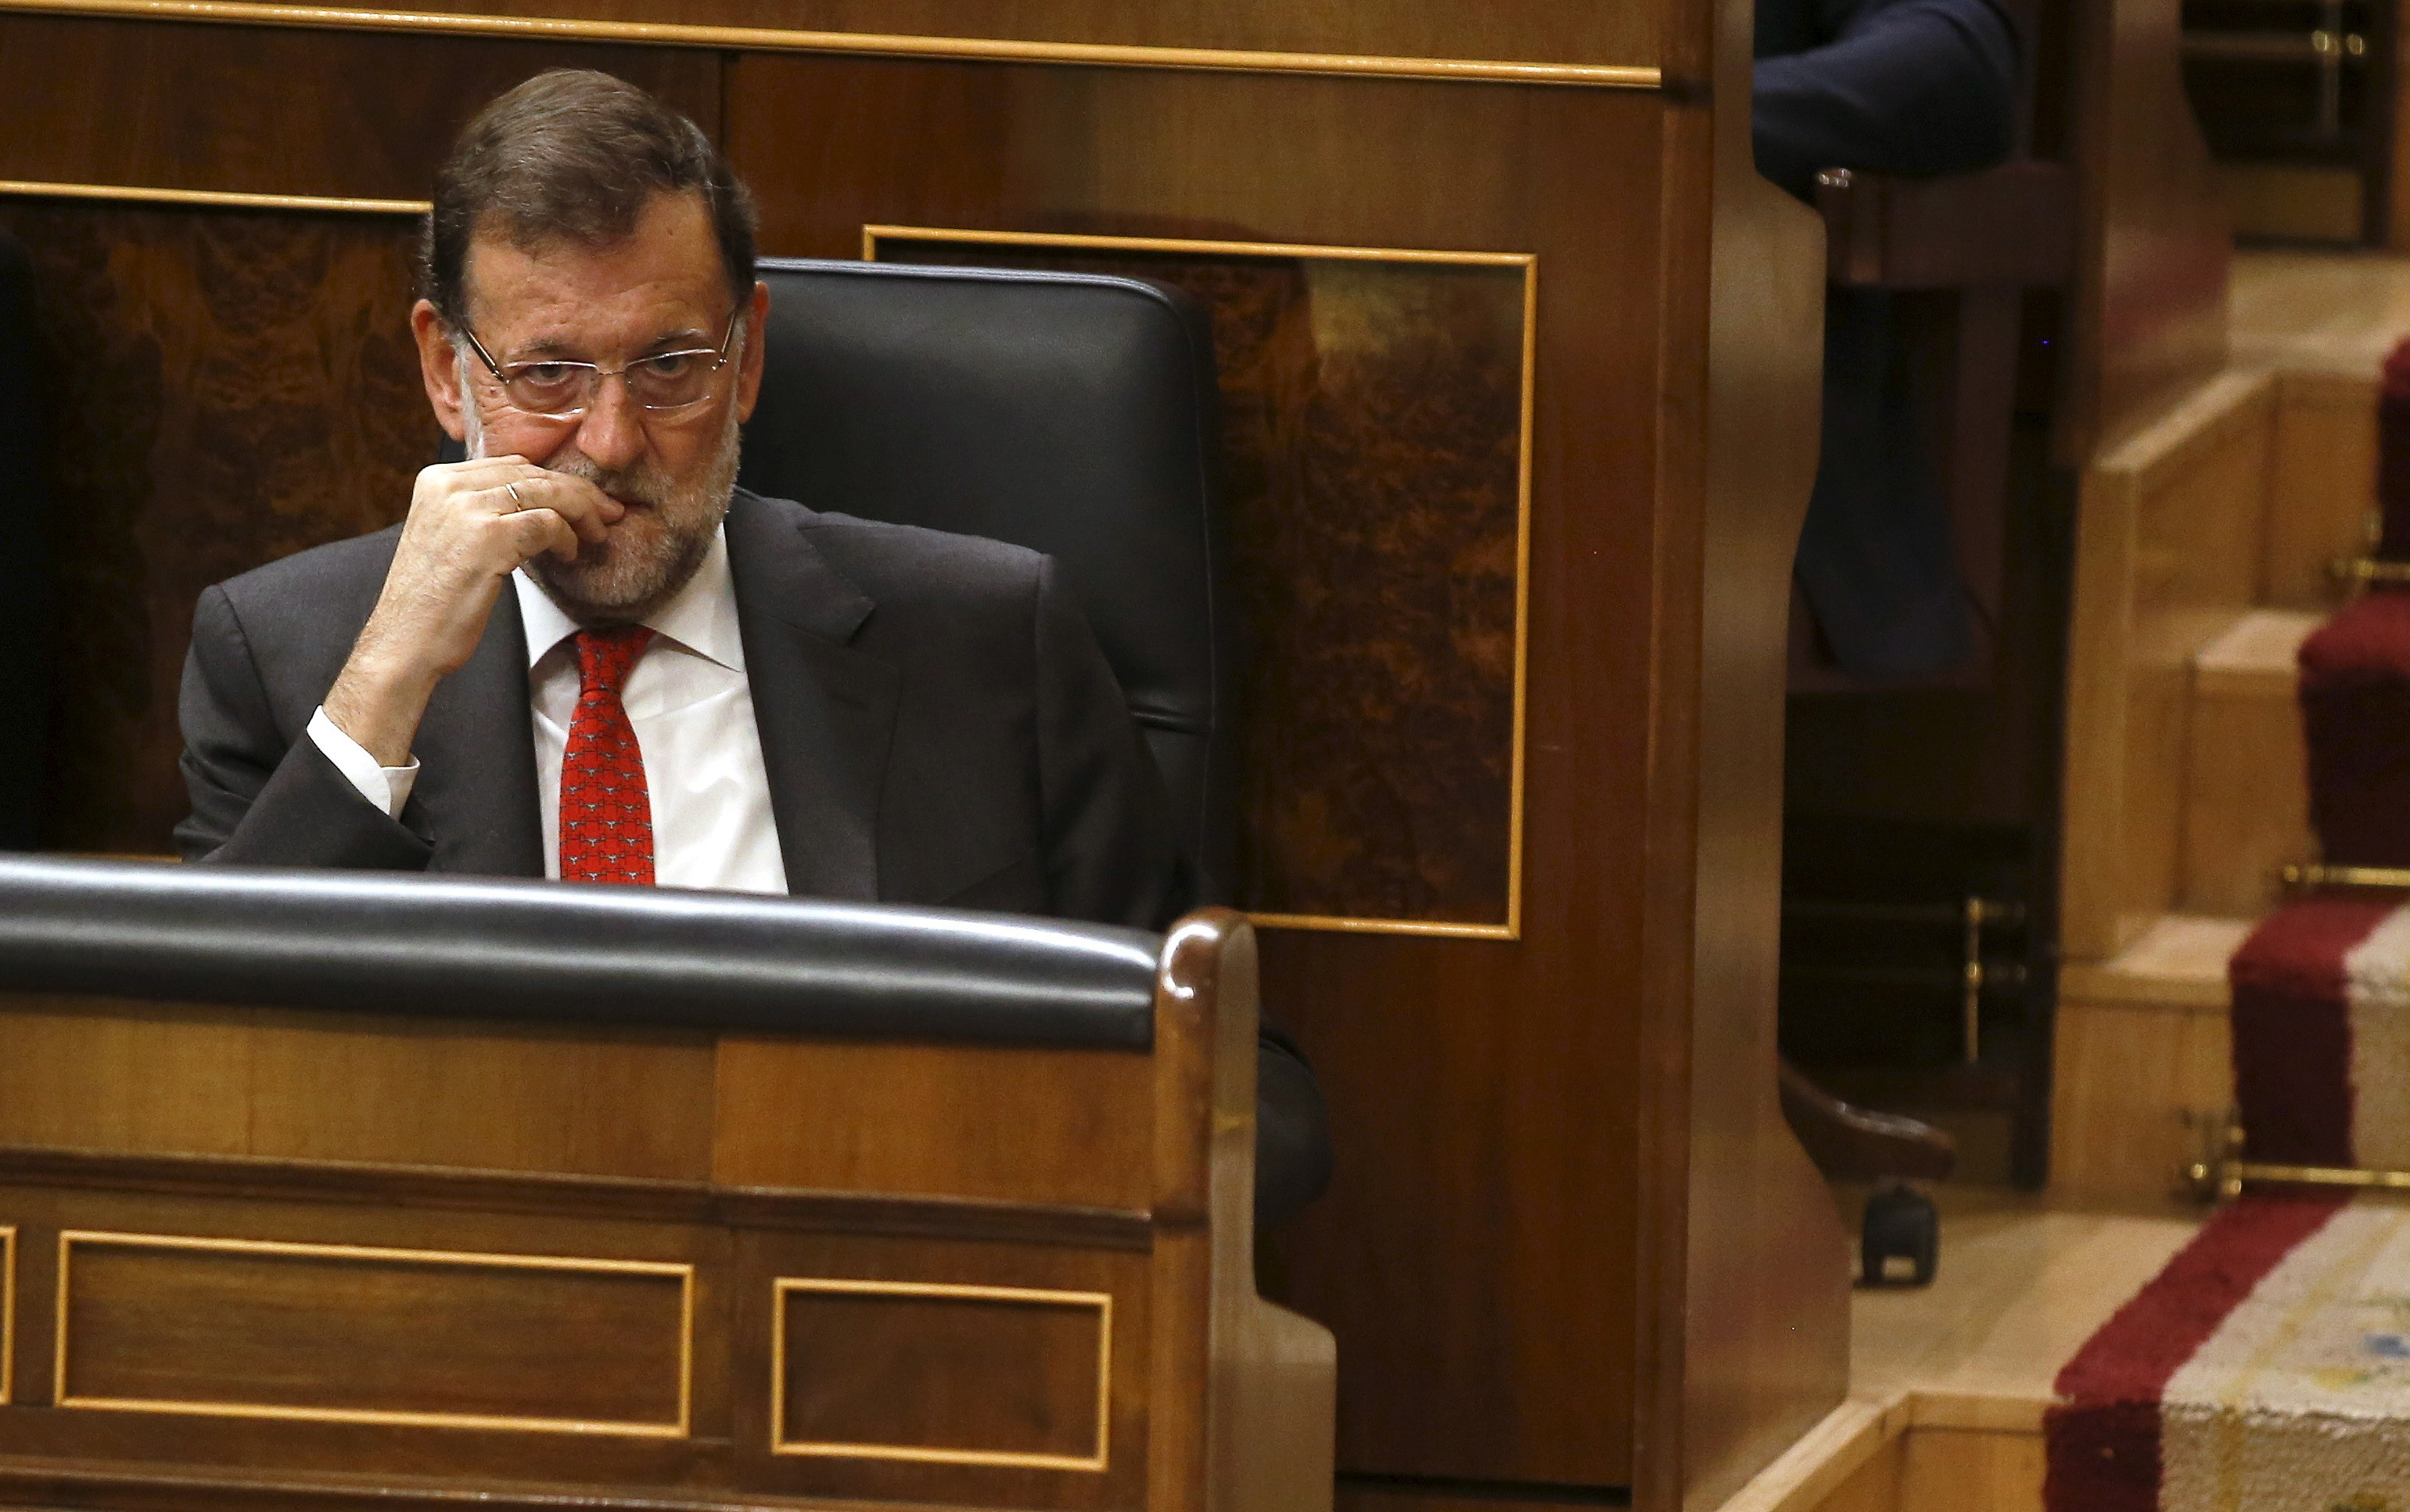 Spain's Prime Minister Mariano Rajoy attends a control session at Spanish parliament in Madrid, Spain, September 30, 2015. REUTERS/Andrea Comas - RTS2DAK